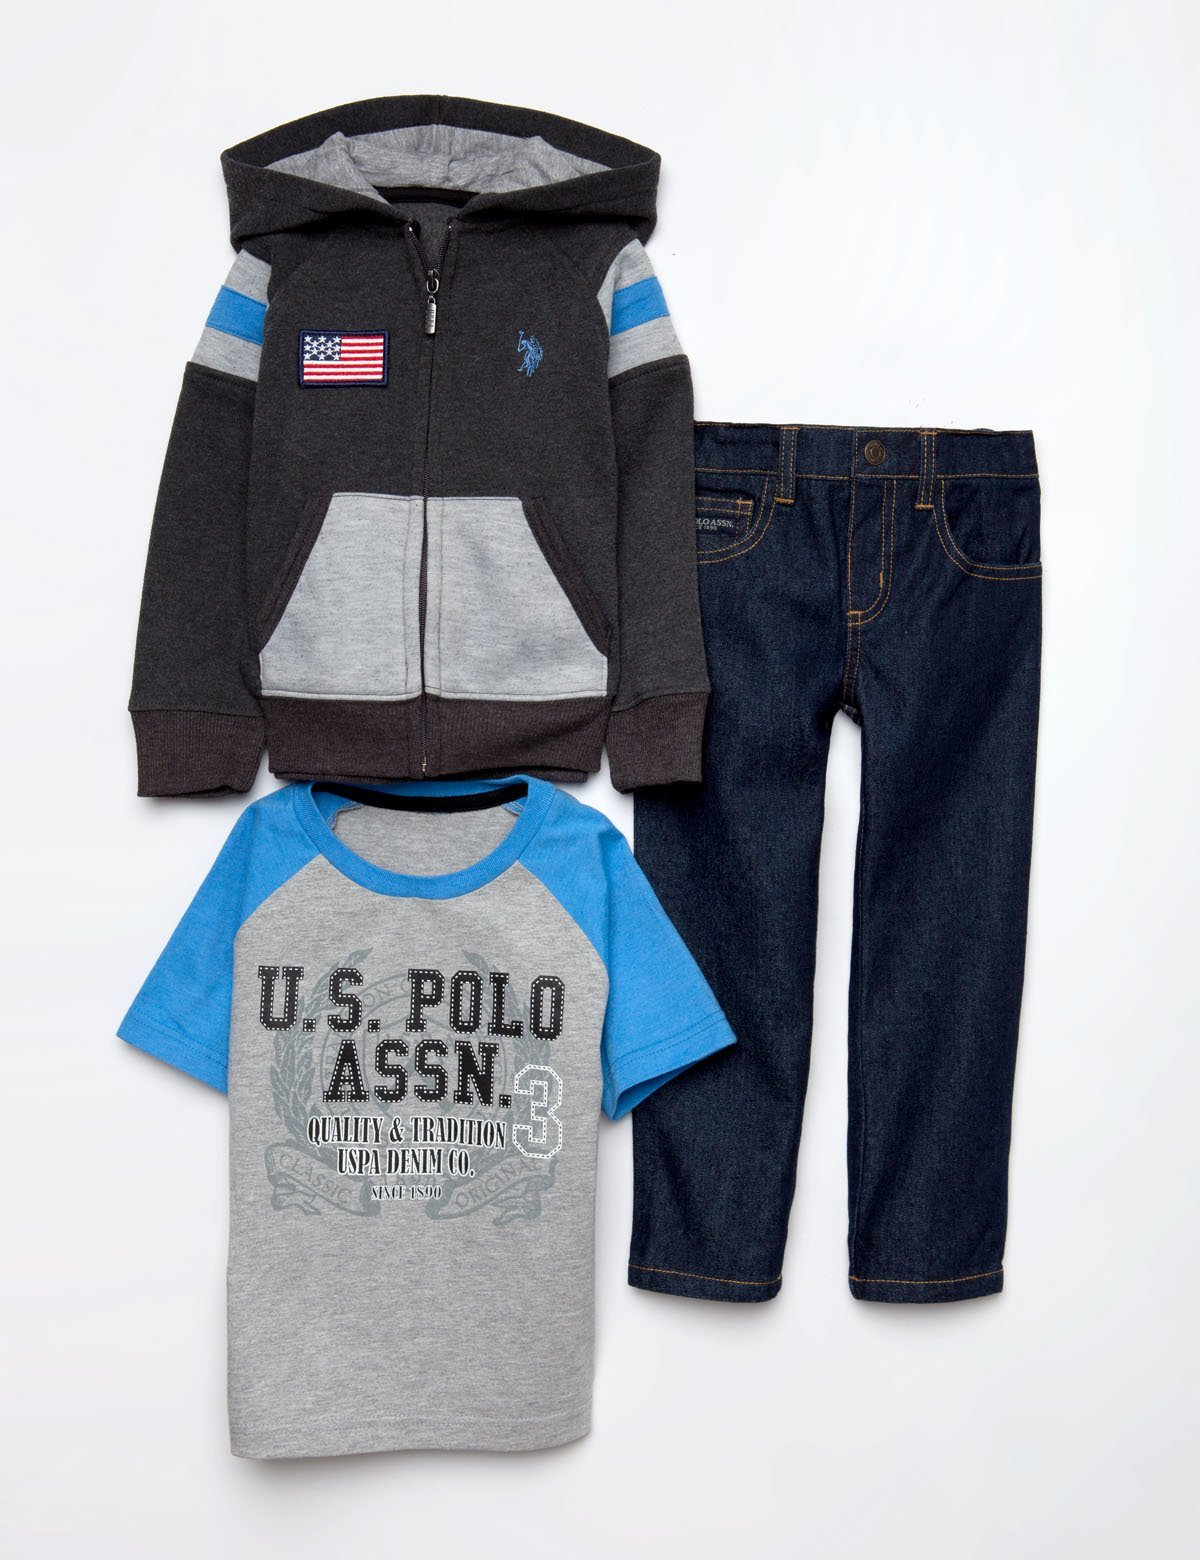 TODDLER 3 PIECE SET - FLEECE, TEE & JEANS - U.S. Polo Assn.